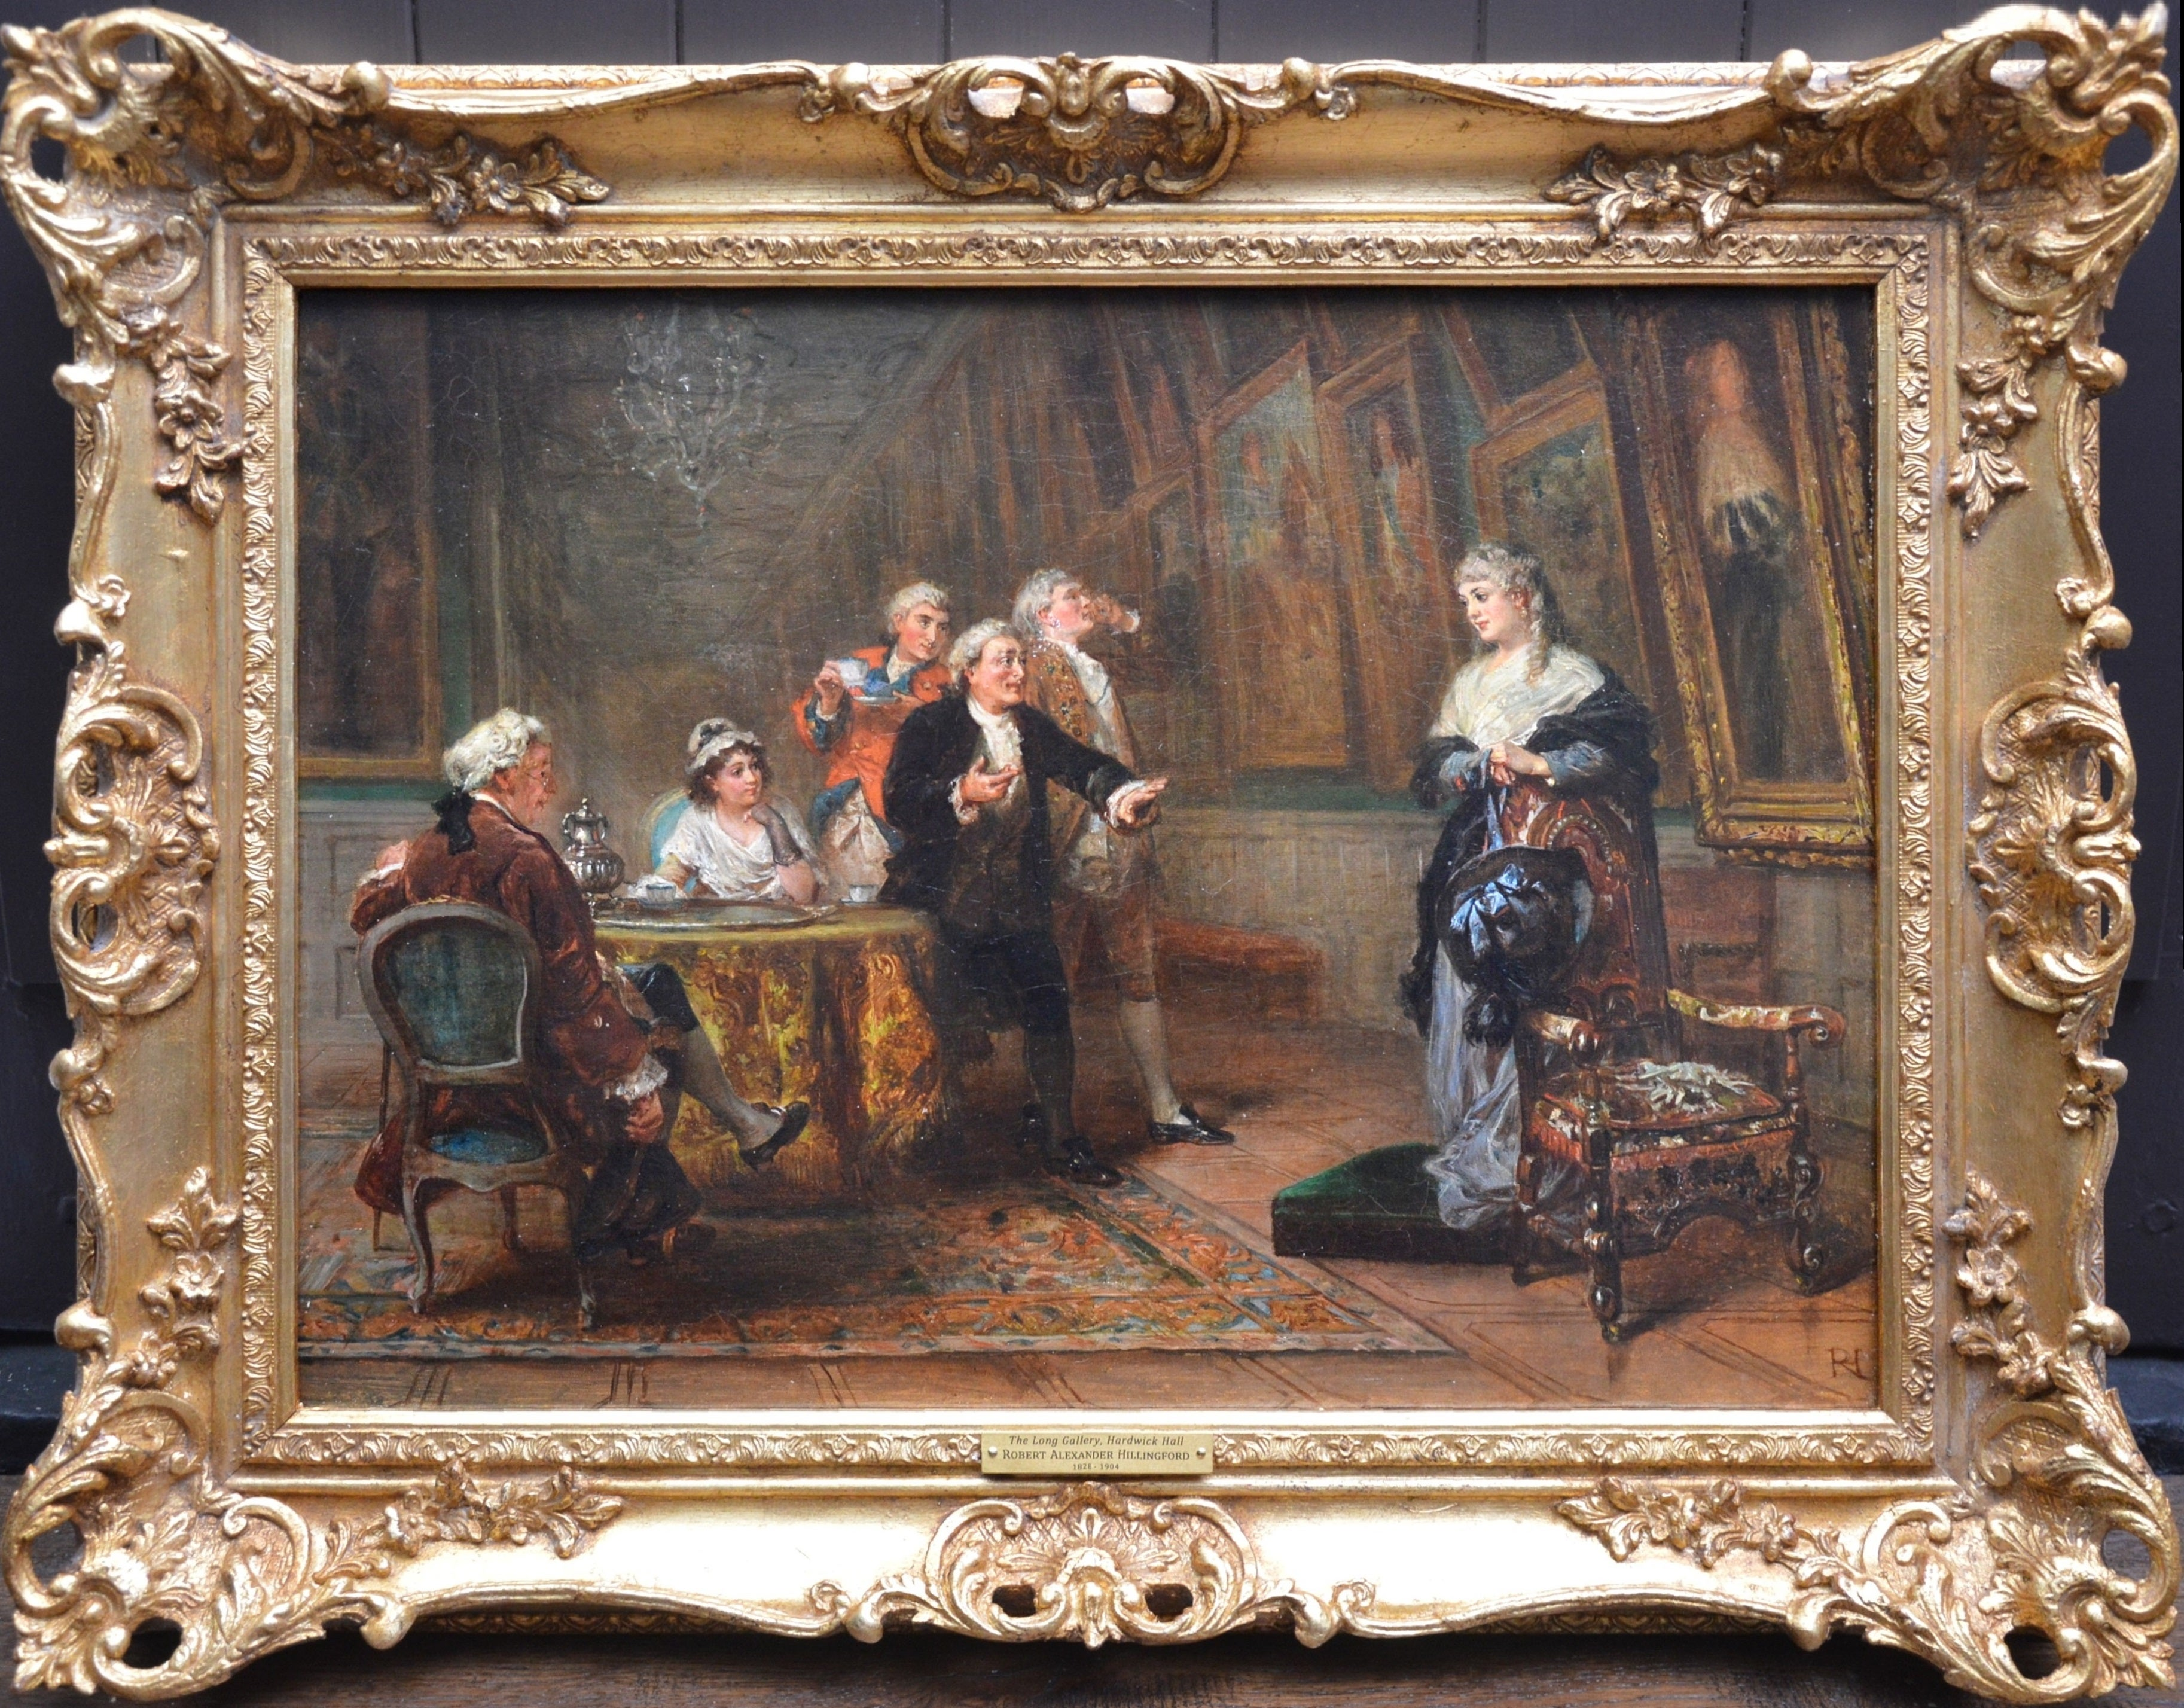 The Long Gallery, Hardwick Hall - 19th Century English Stately Home Oil Painting